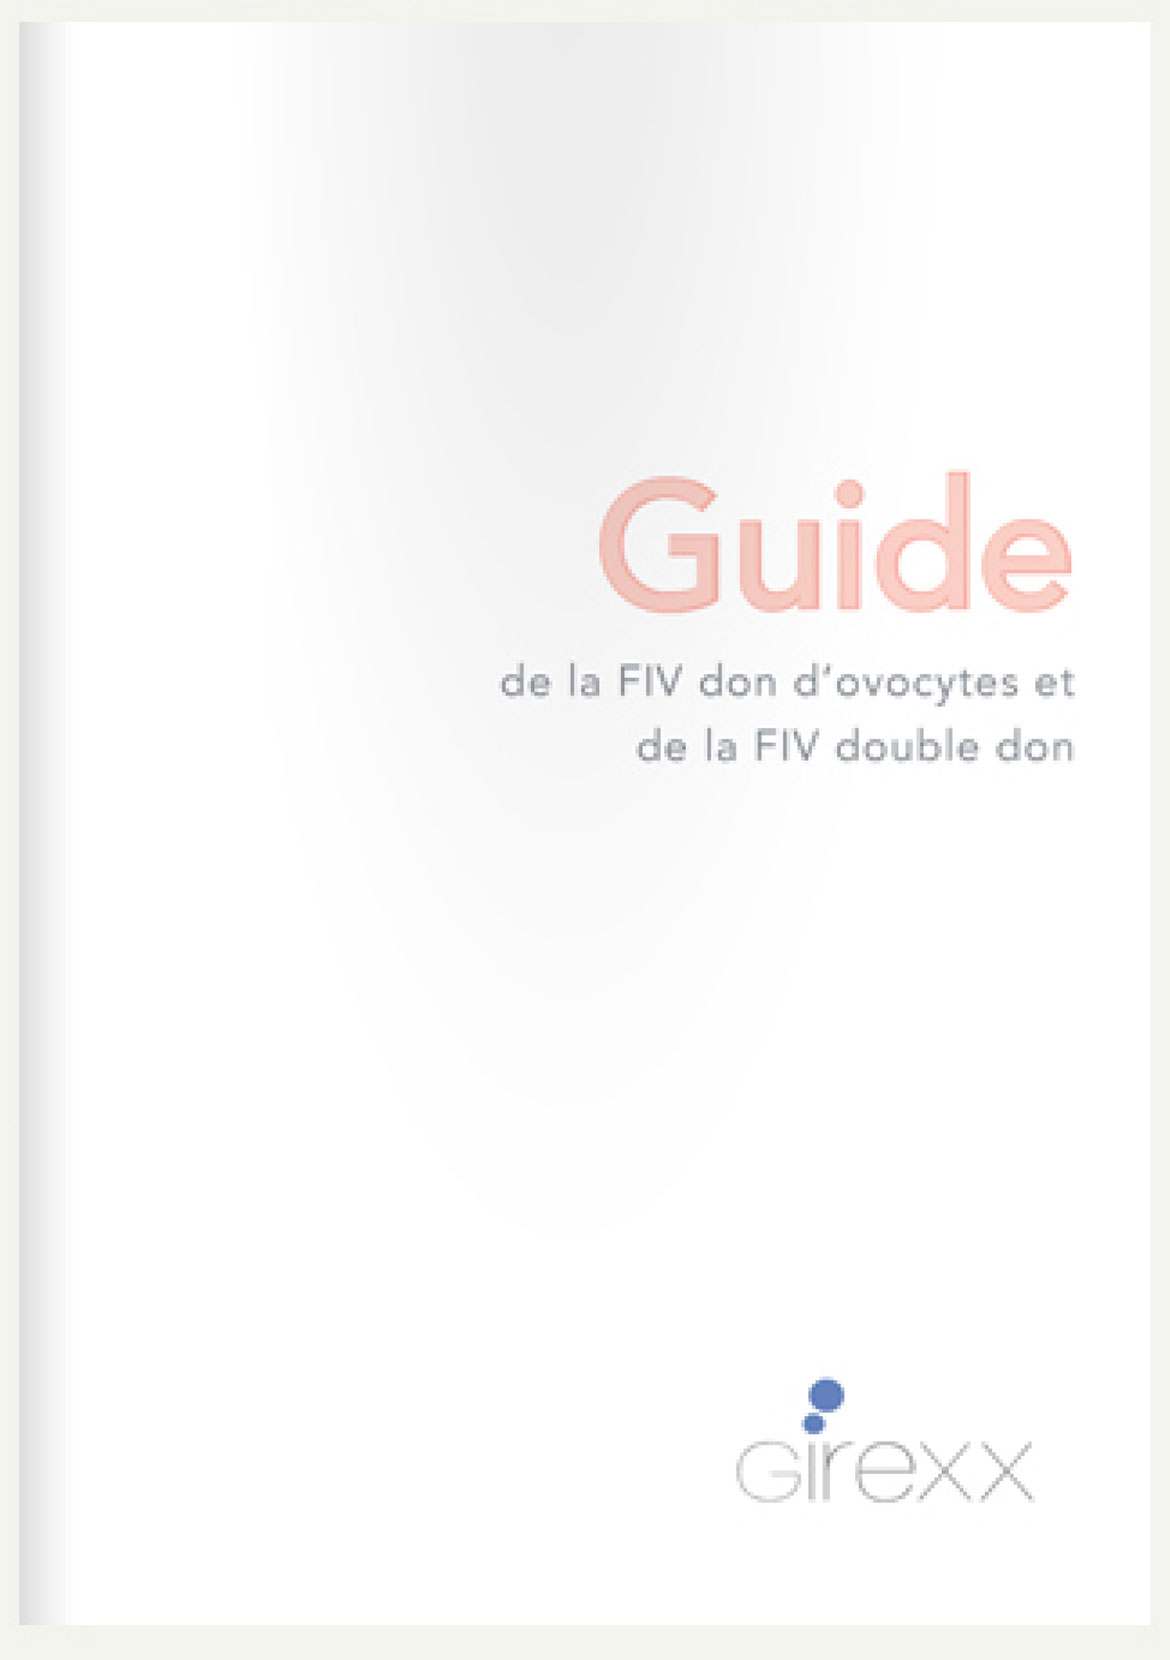 Guide FIV DO/DD